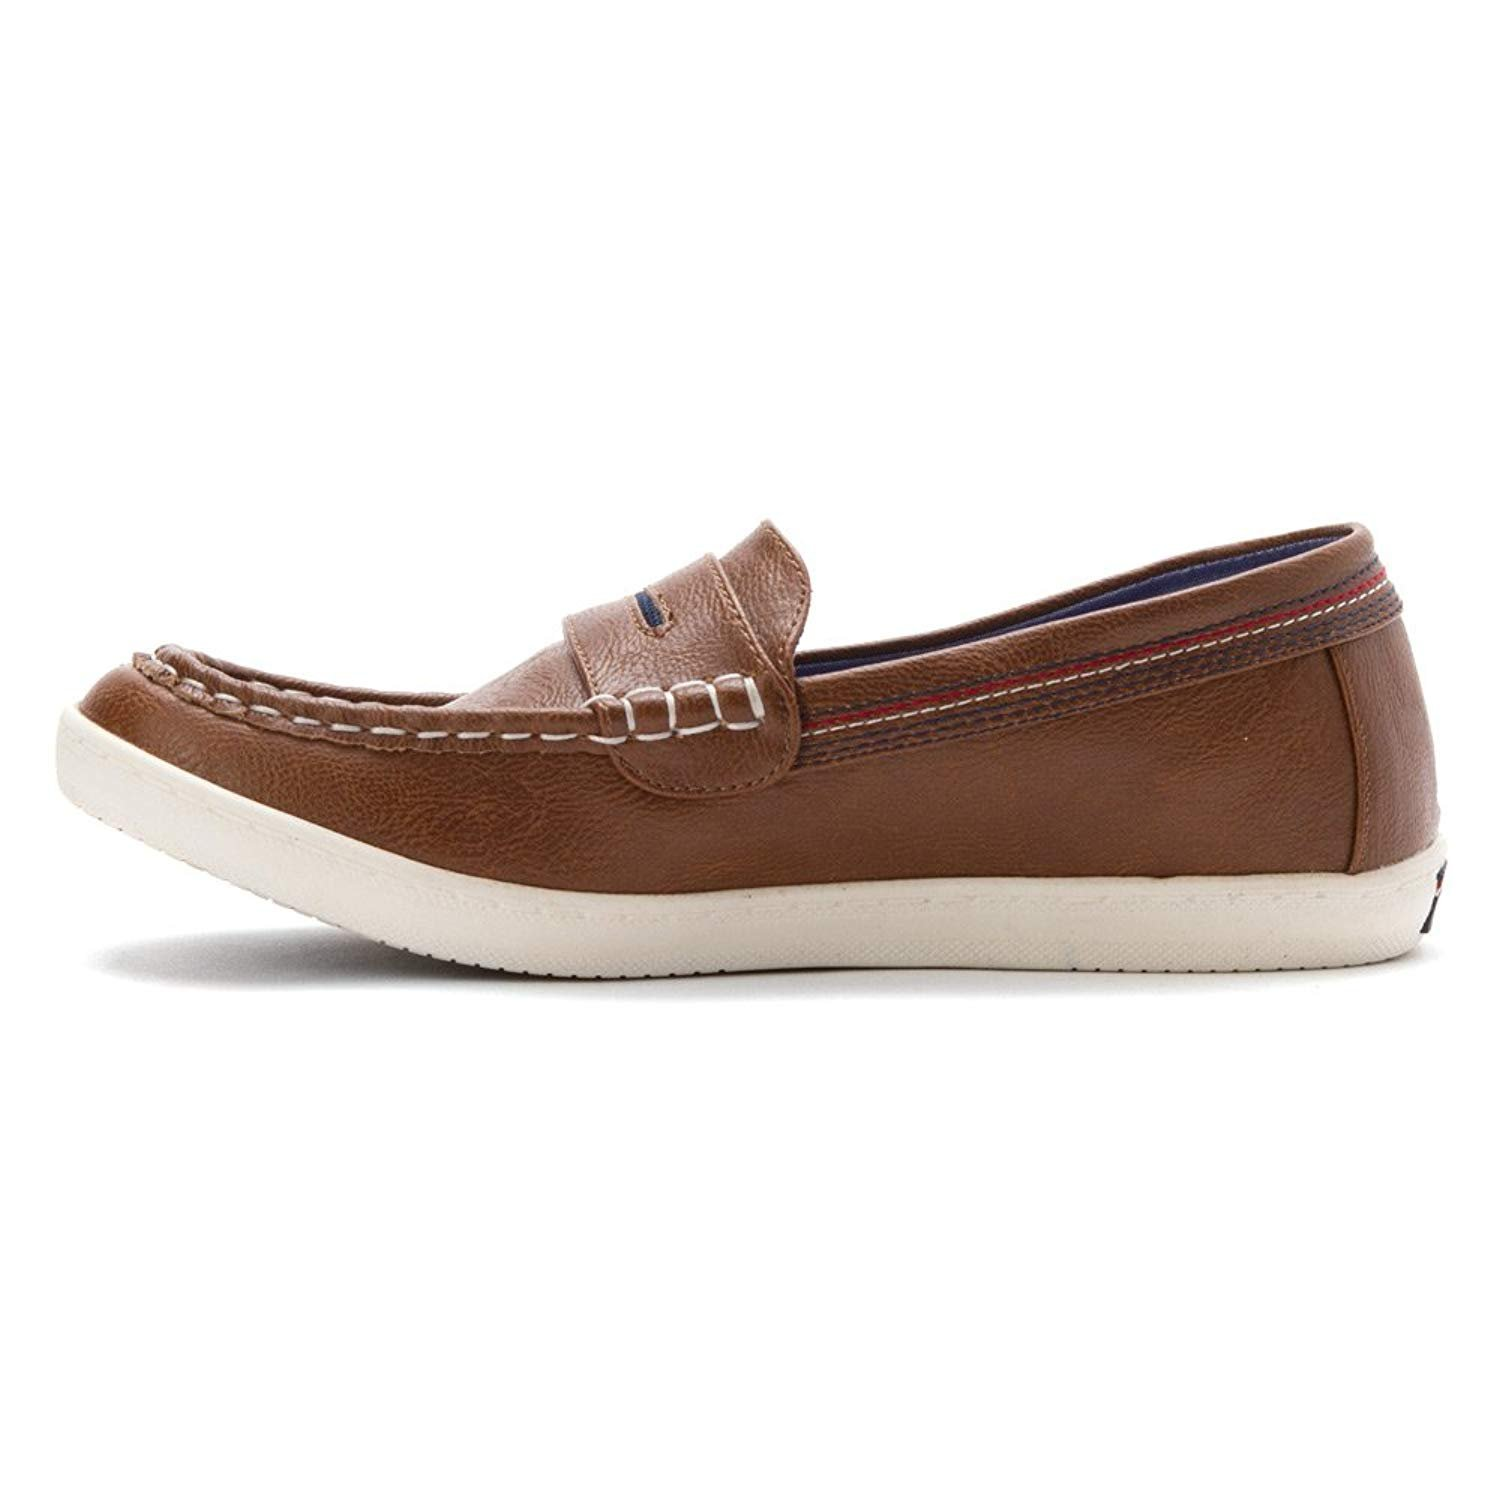 Tommy Hilfiger Womens Dwayne Leather Closed Toe Boat, Cognac/Peacoat, Size 6.0